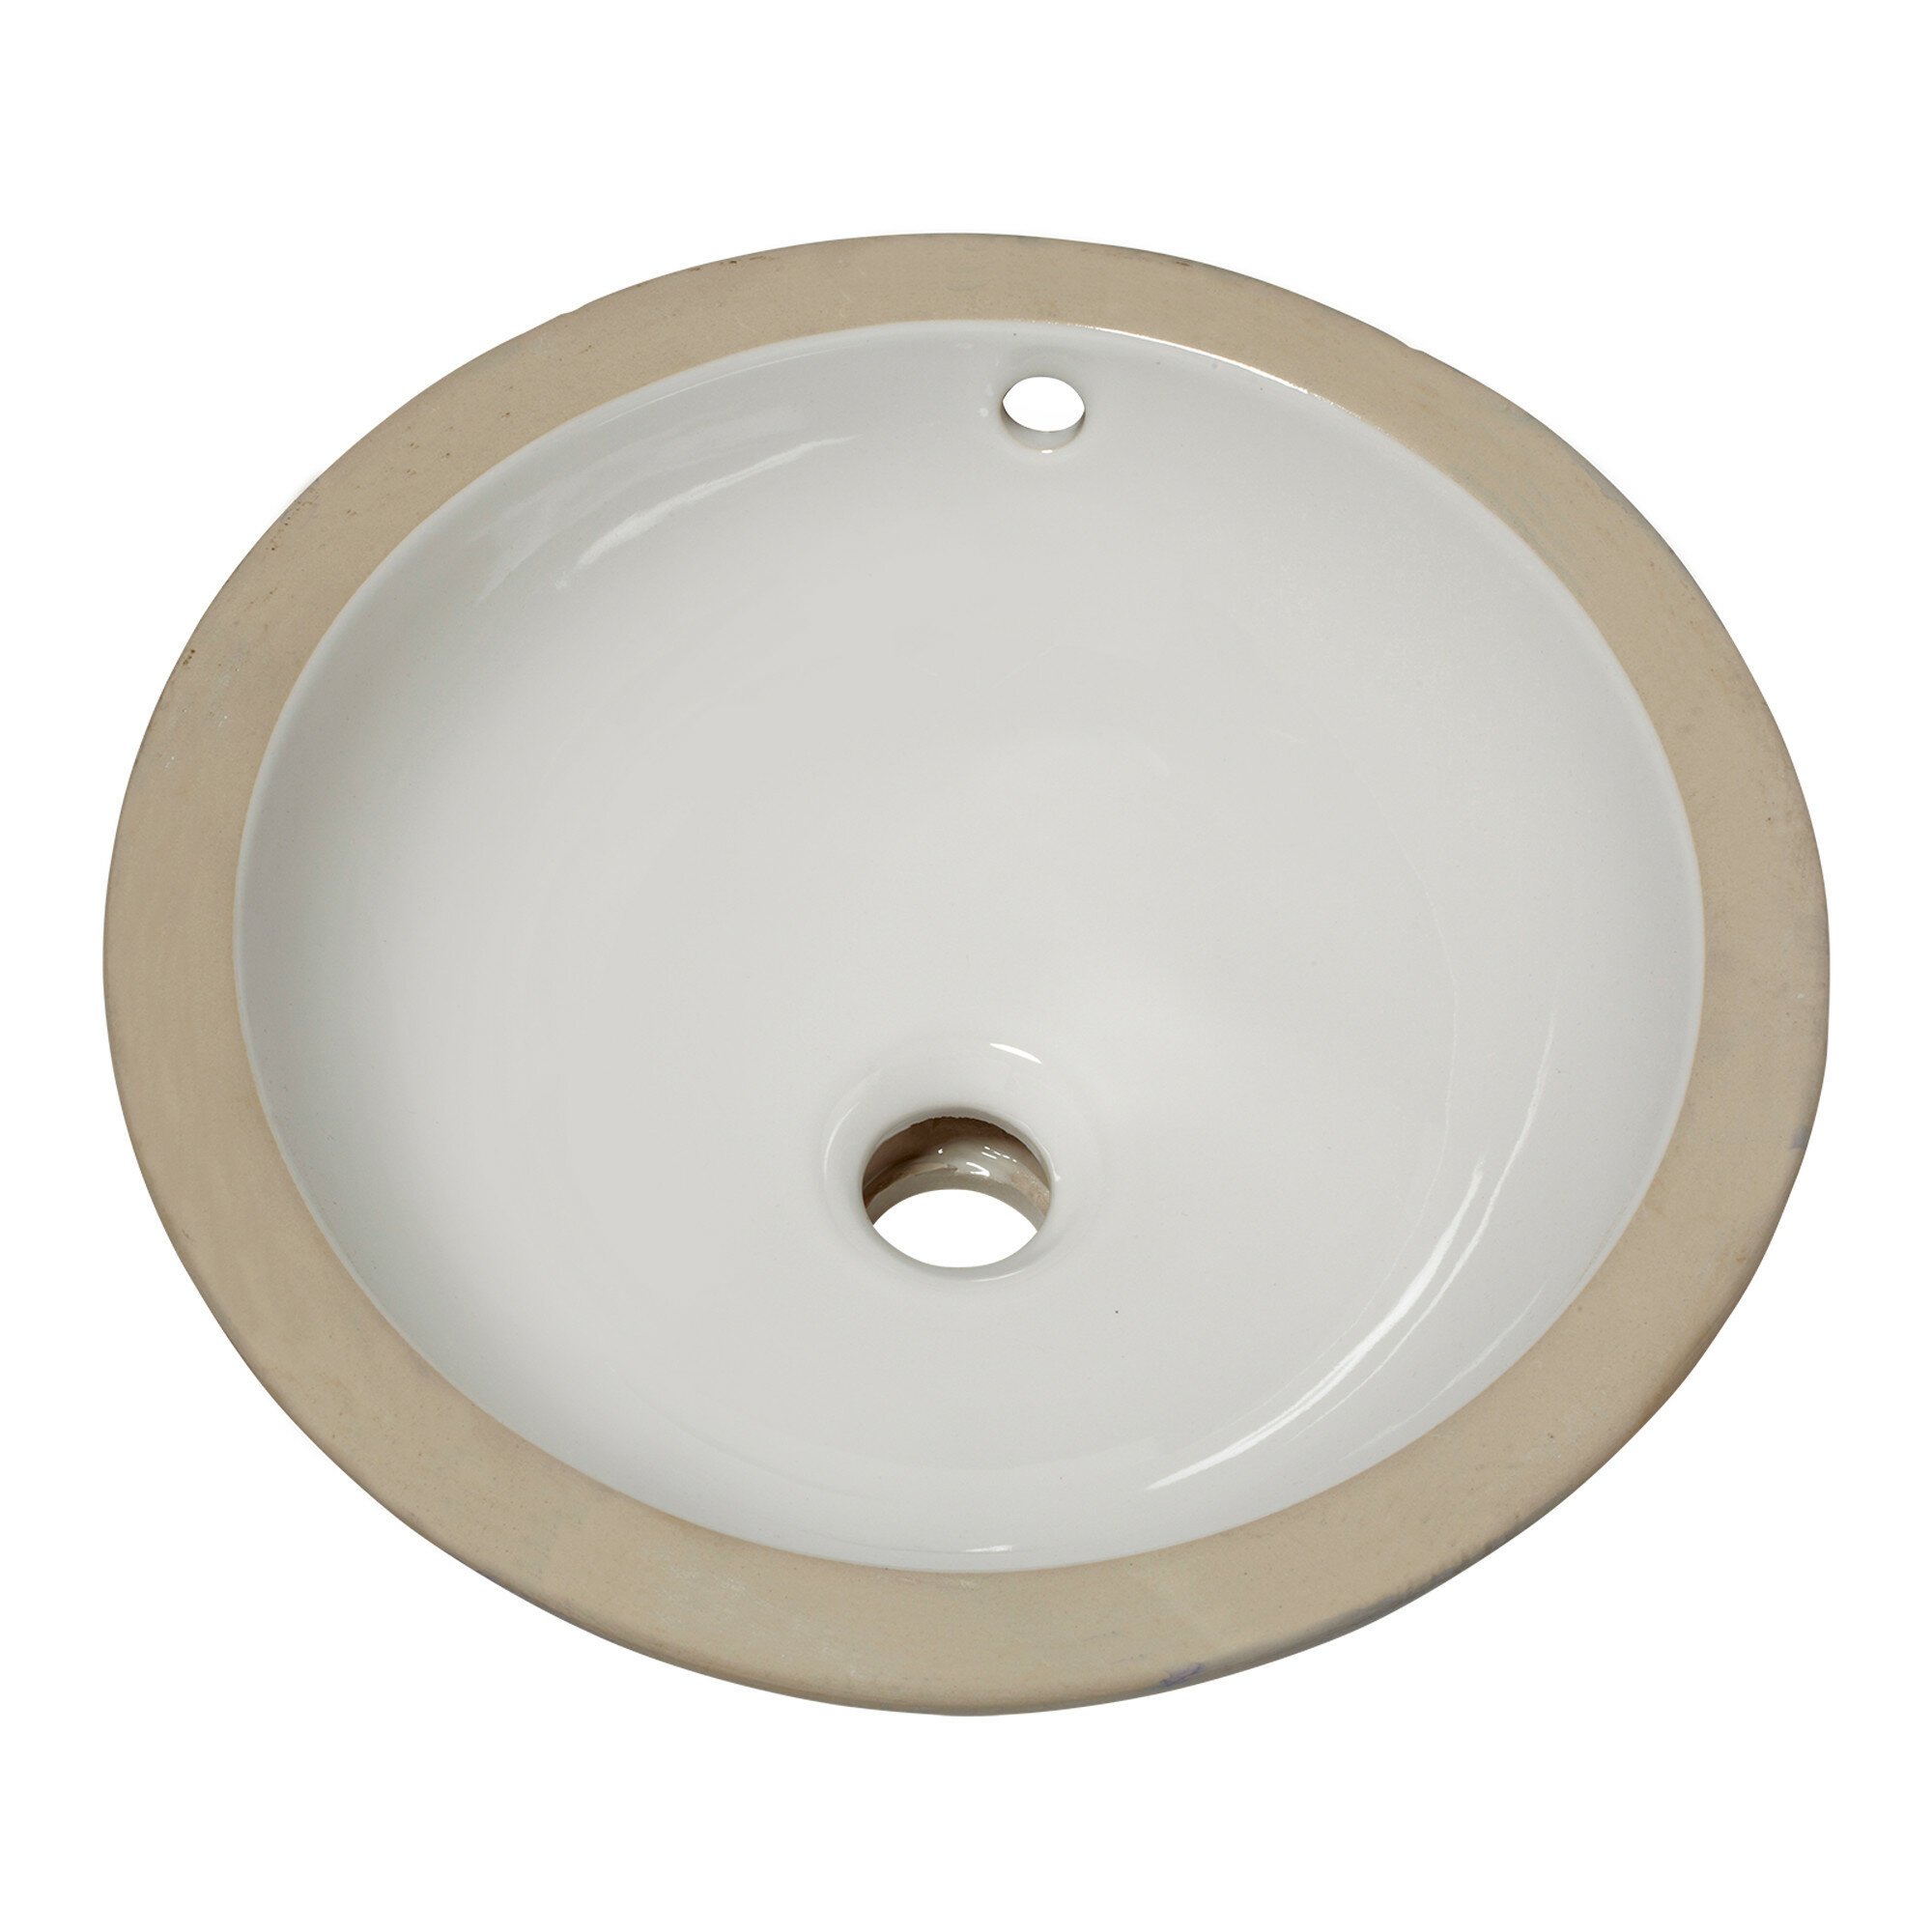 American Standard Orbit Ceramic Circular Undermount Bathroom Sink With Overflow Reviews Wayfair